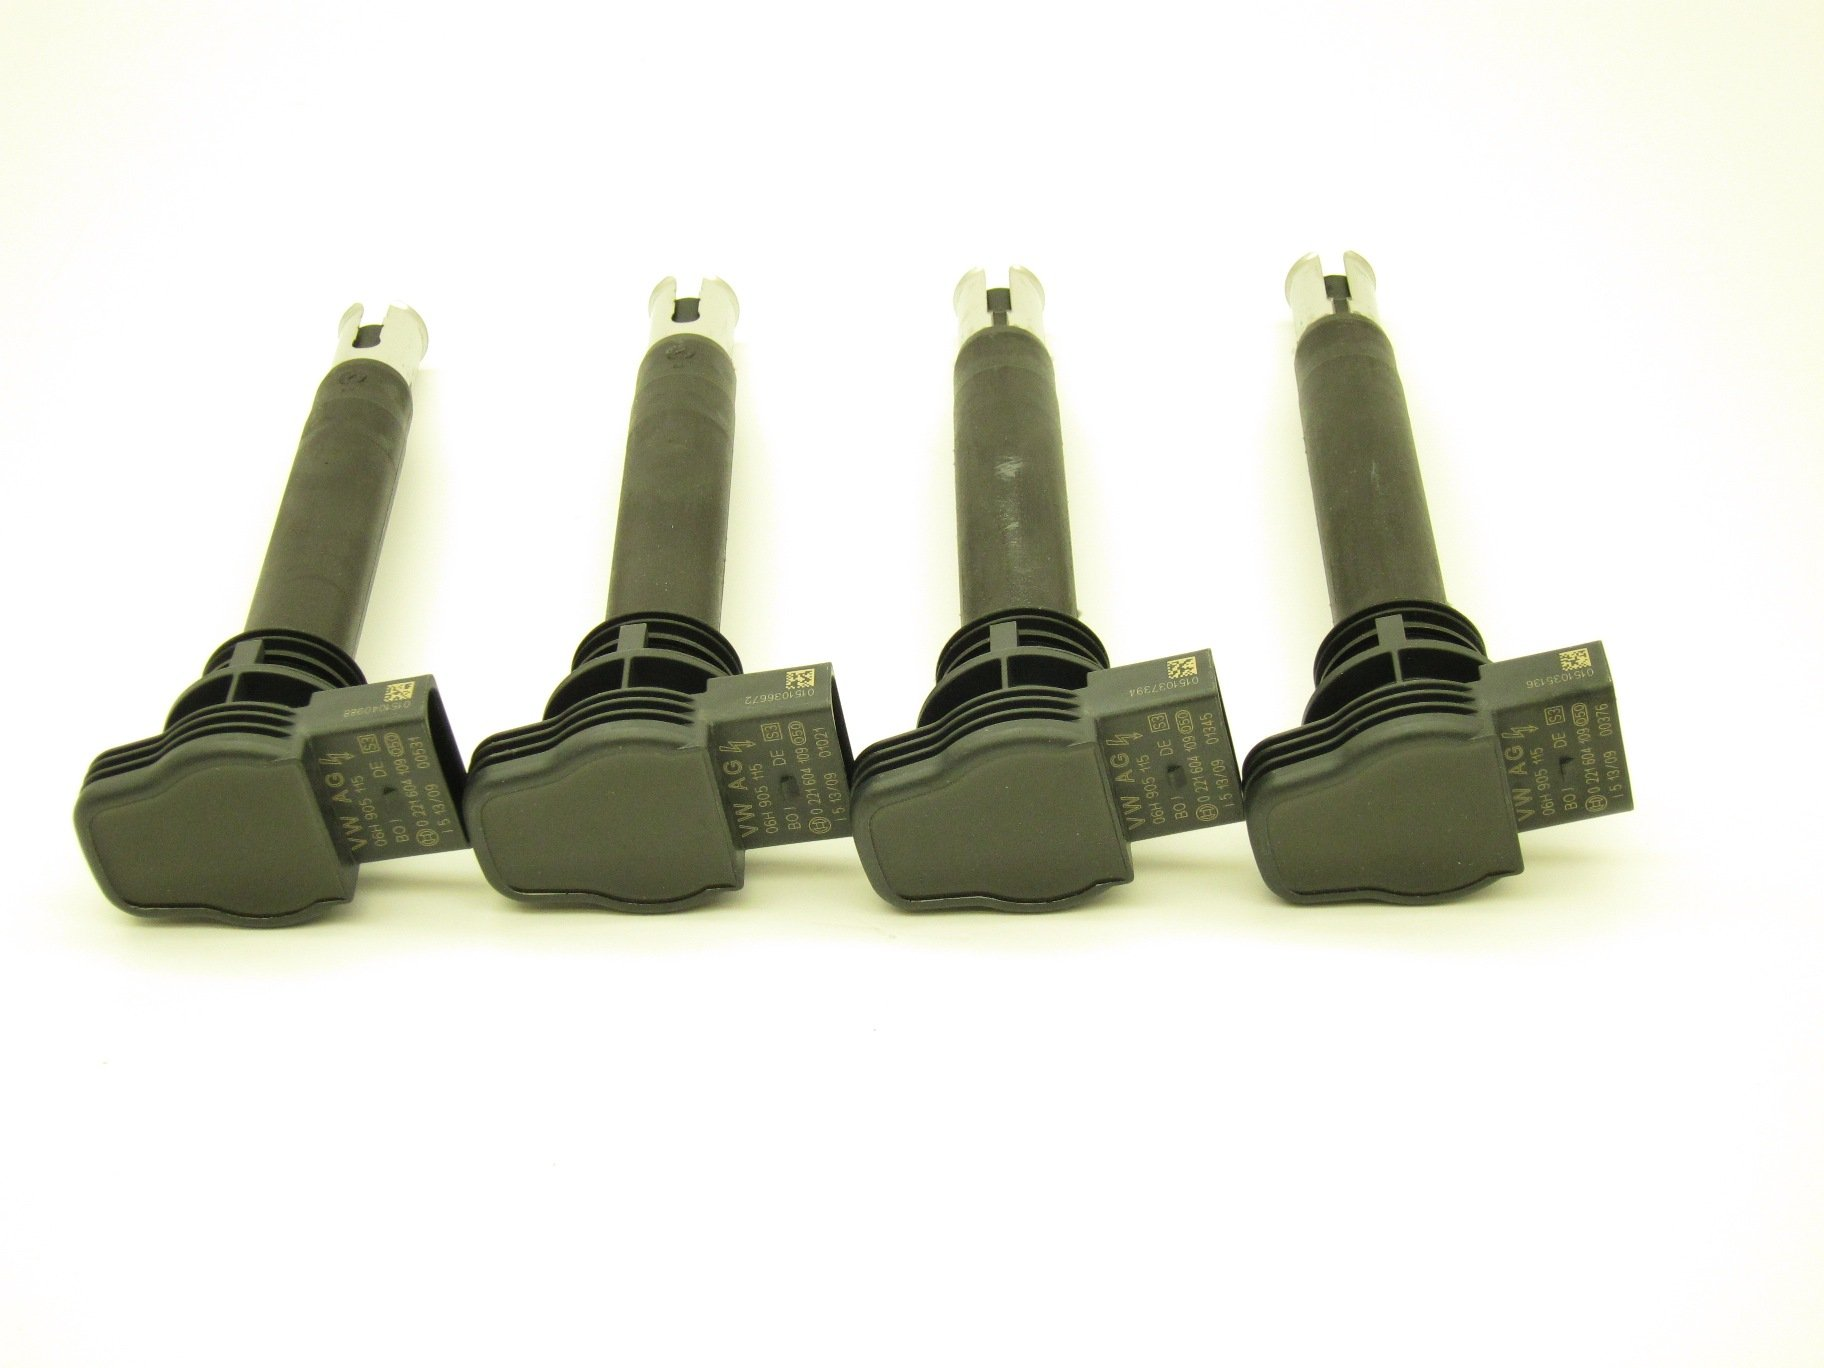 06H-905-115 2.0T Ignition Coil Set of 4